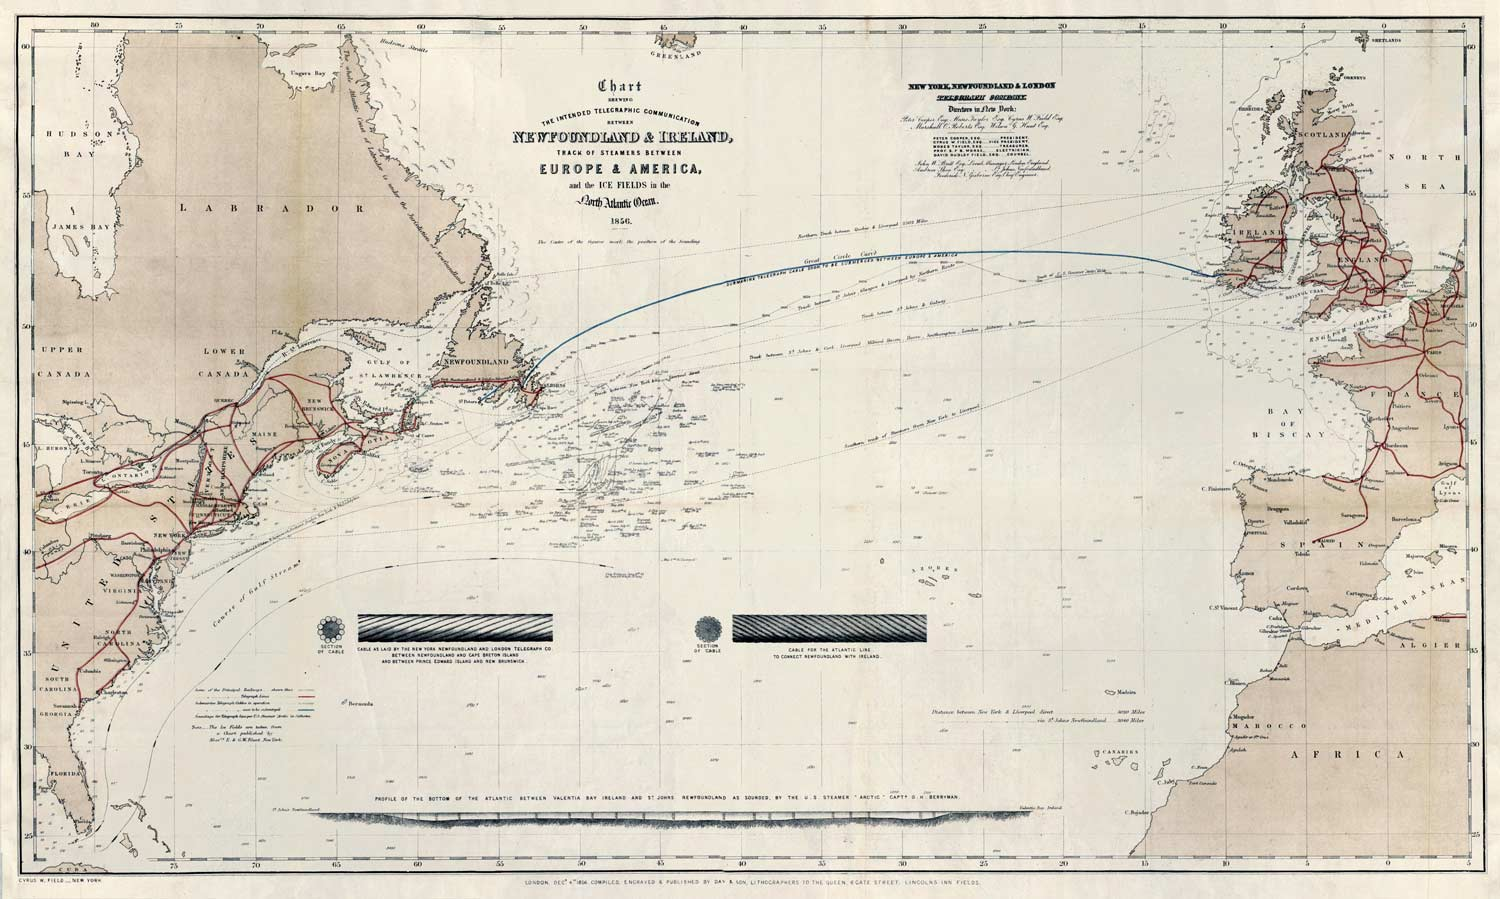 History Of The Atlantic Cable Submarine Telegraphy First Schematic Shows Global Loom With Colours Wire Diameters Chart Shewing Intended Telegraphic Communication Between Newfoundland And Ireland London Day Son Dec 4th 1856